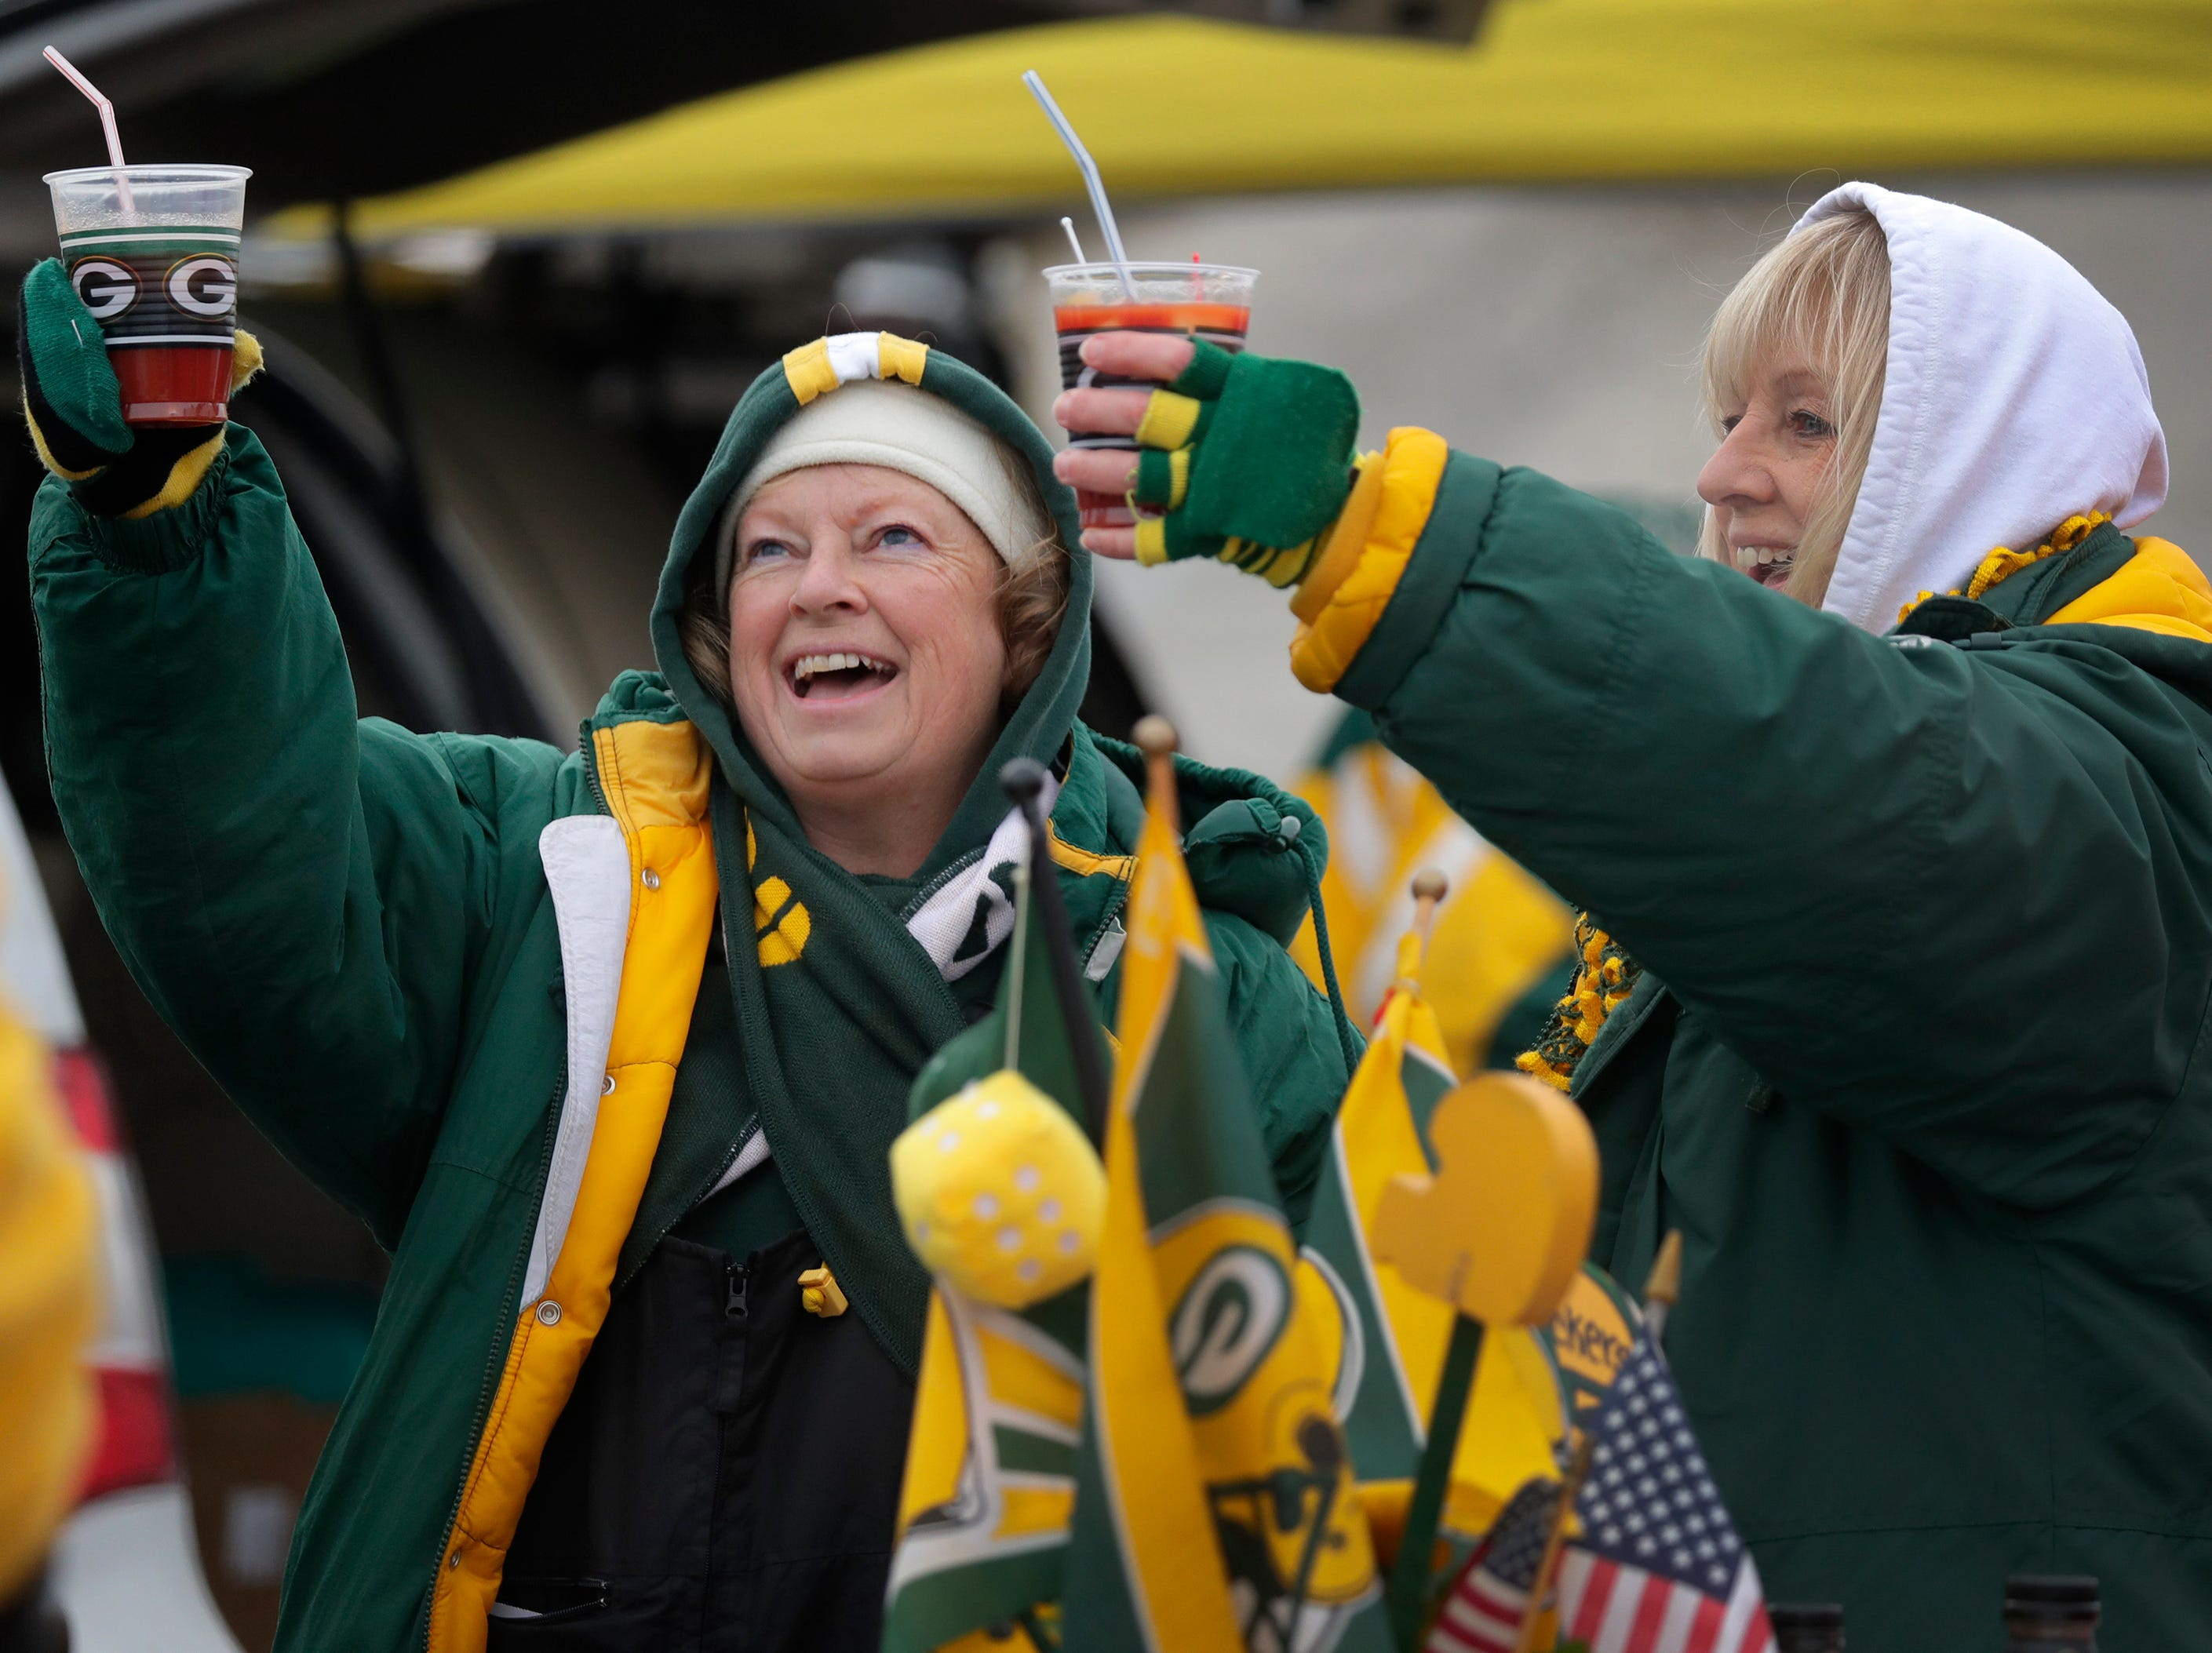 Sue Gutzman, left, and Debbie Gore tailgate before the Green Bay Packers take on the Detroit Lions on Sunday, December 30, 2018, at Lambeau Field in Green Bay, Wis.